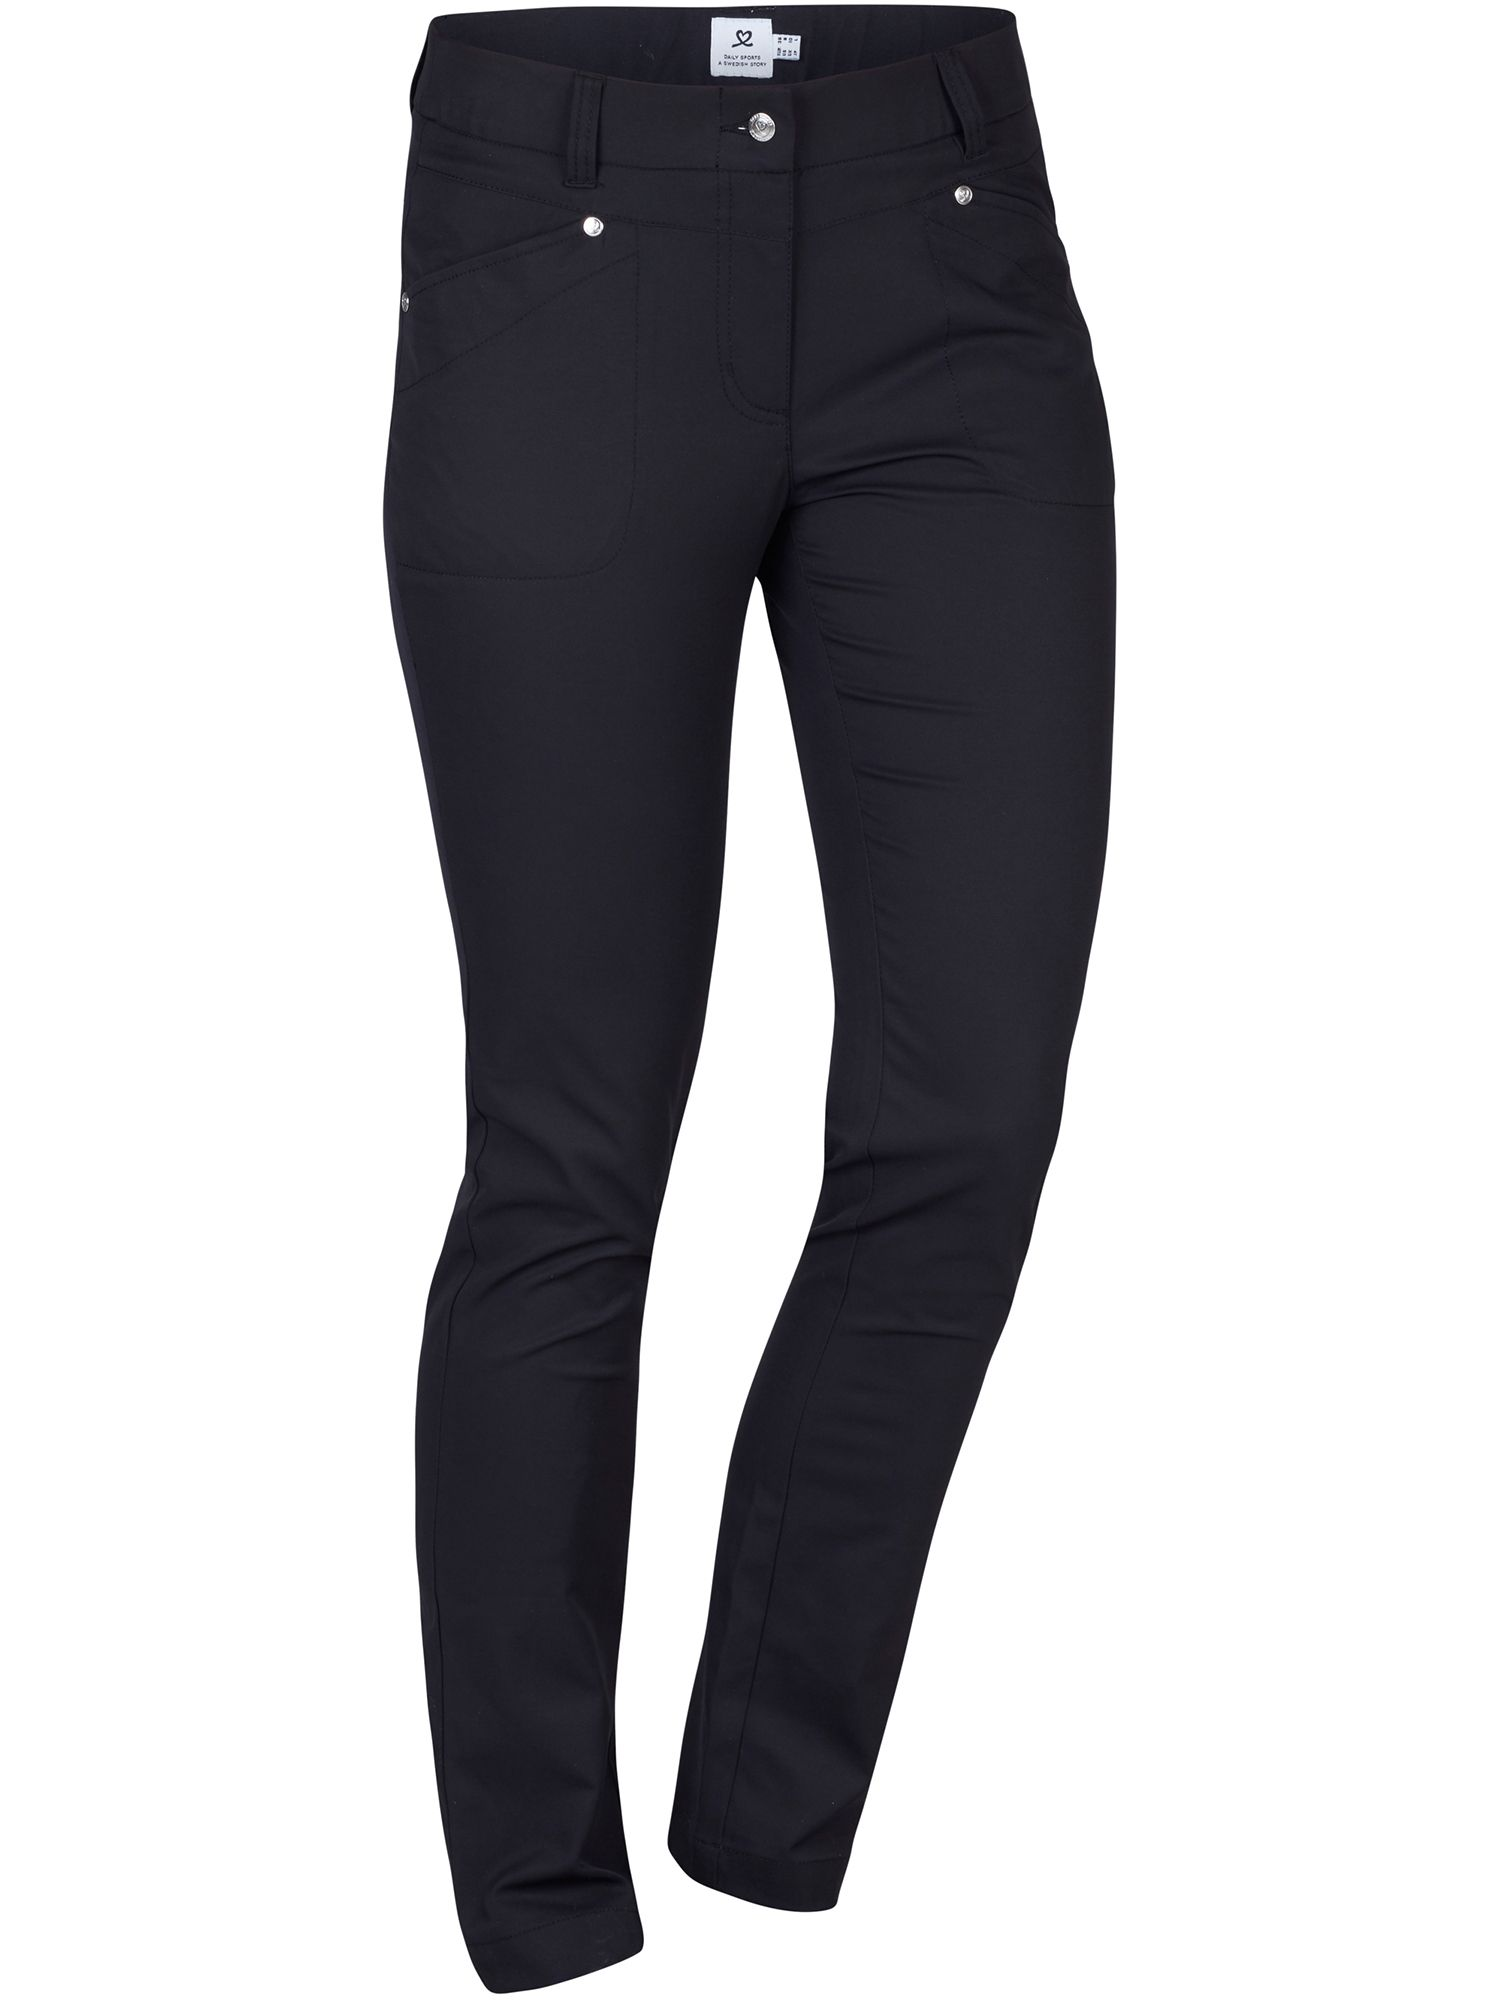 Daily Sports Lyric Trousers, Black